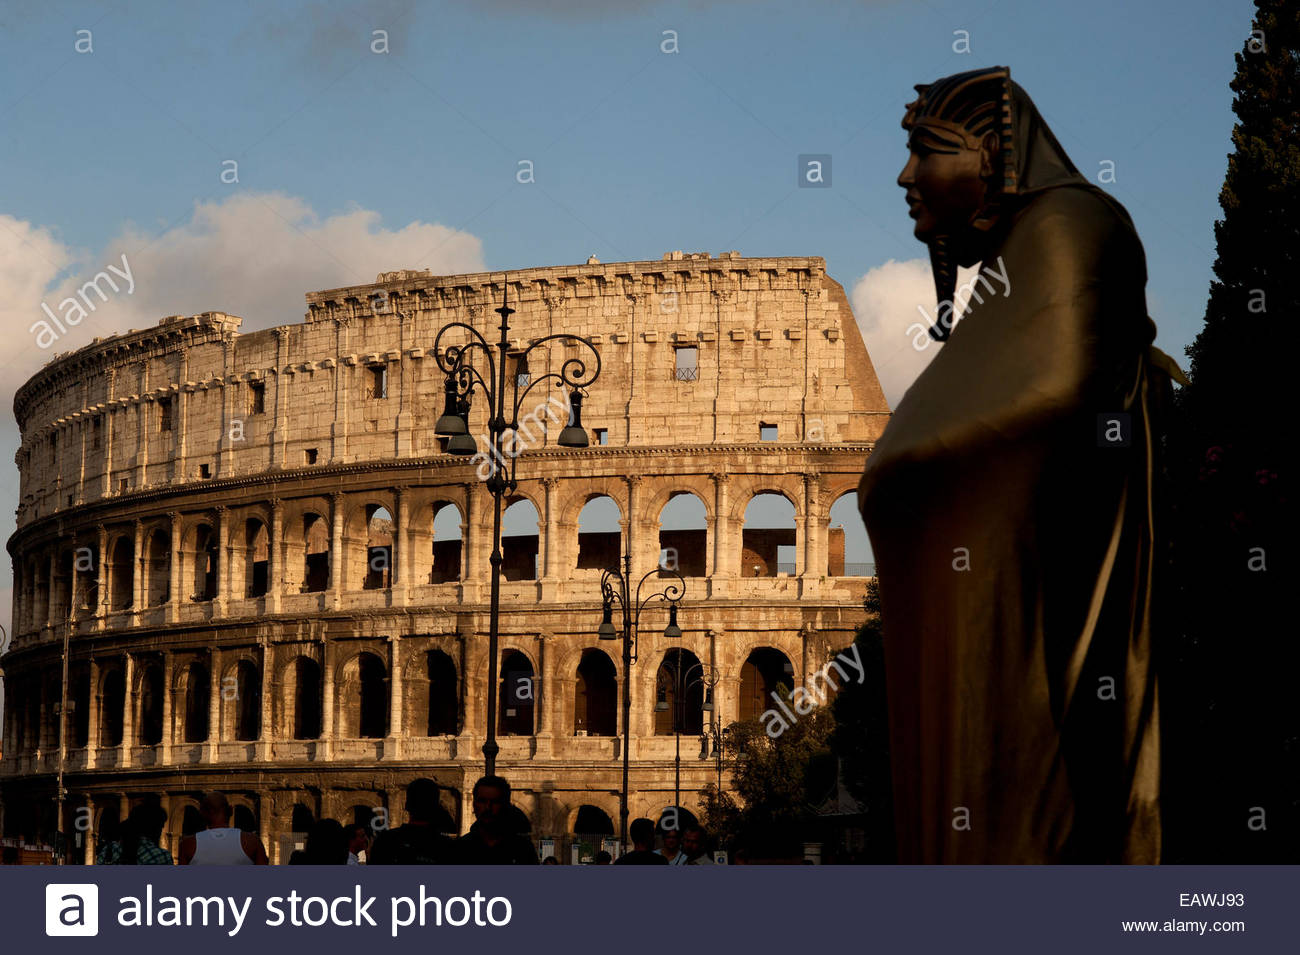 A statue of a pharaoh overlooks the Roman Colosseum. - Stock Image